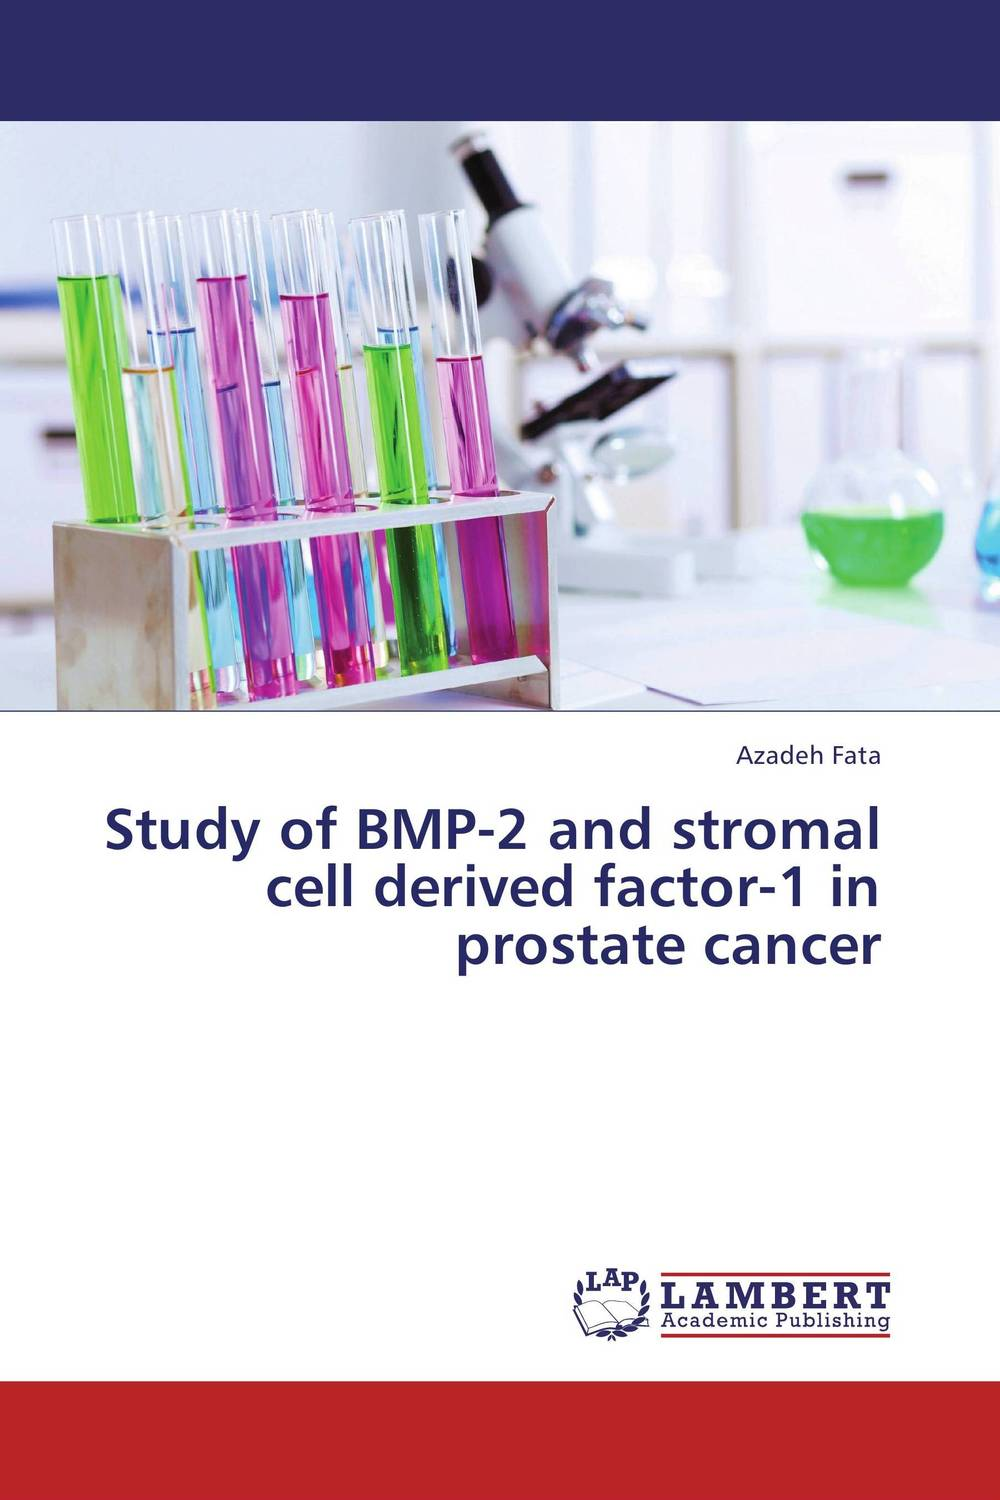 Study of BMP-2 and stromal cell derived factor-1 in prostate cancer benign enlargement of prostate gland bep in ayurveda